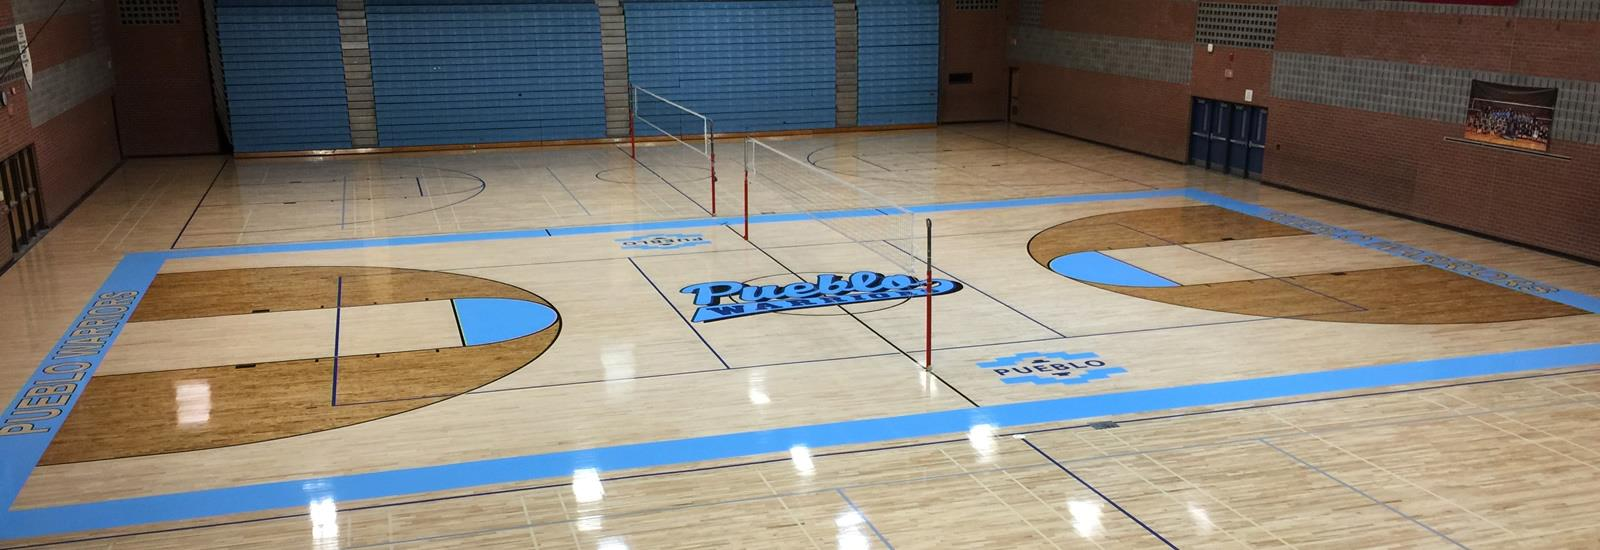 Our Home Floor